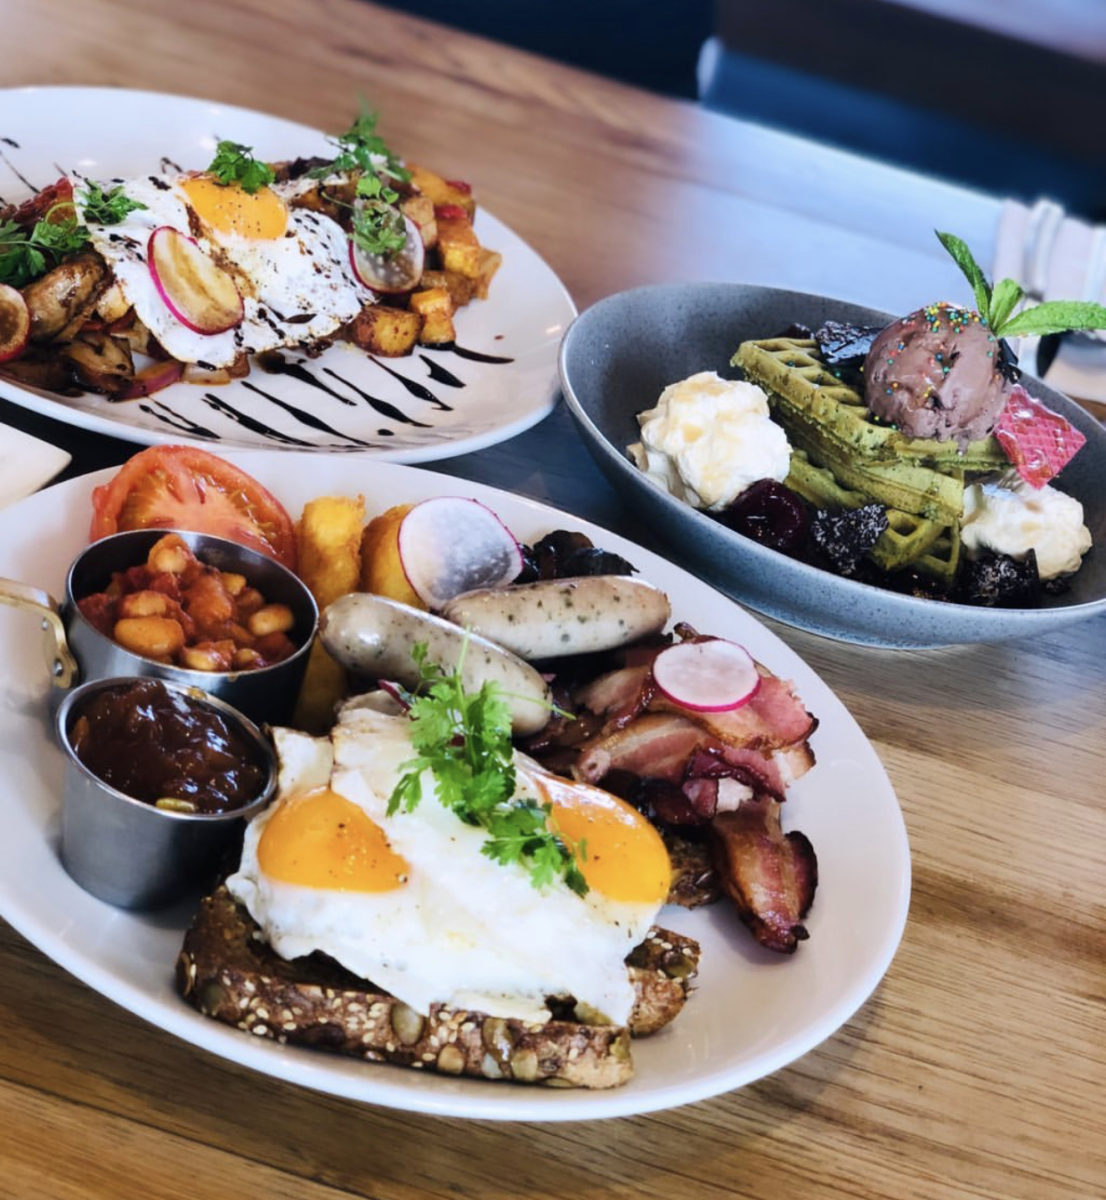 big breakfast pork belly hash matcha waffles yummy breakfast rolleston premium lunch brunch cafe bar pub restaurant gastropub bacon beans sausages ice cream